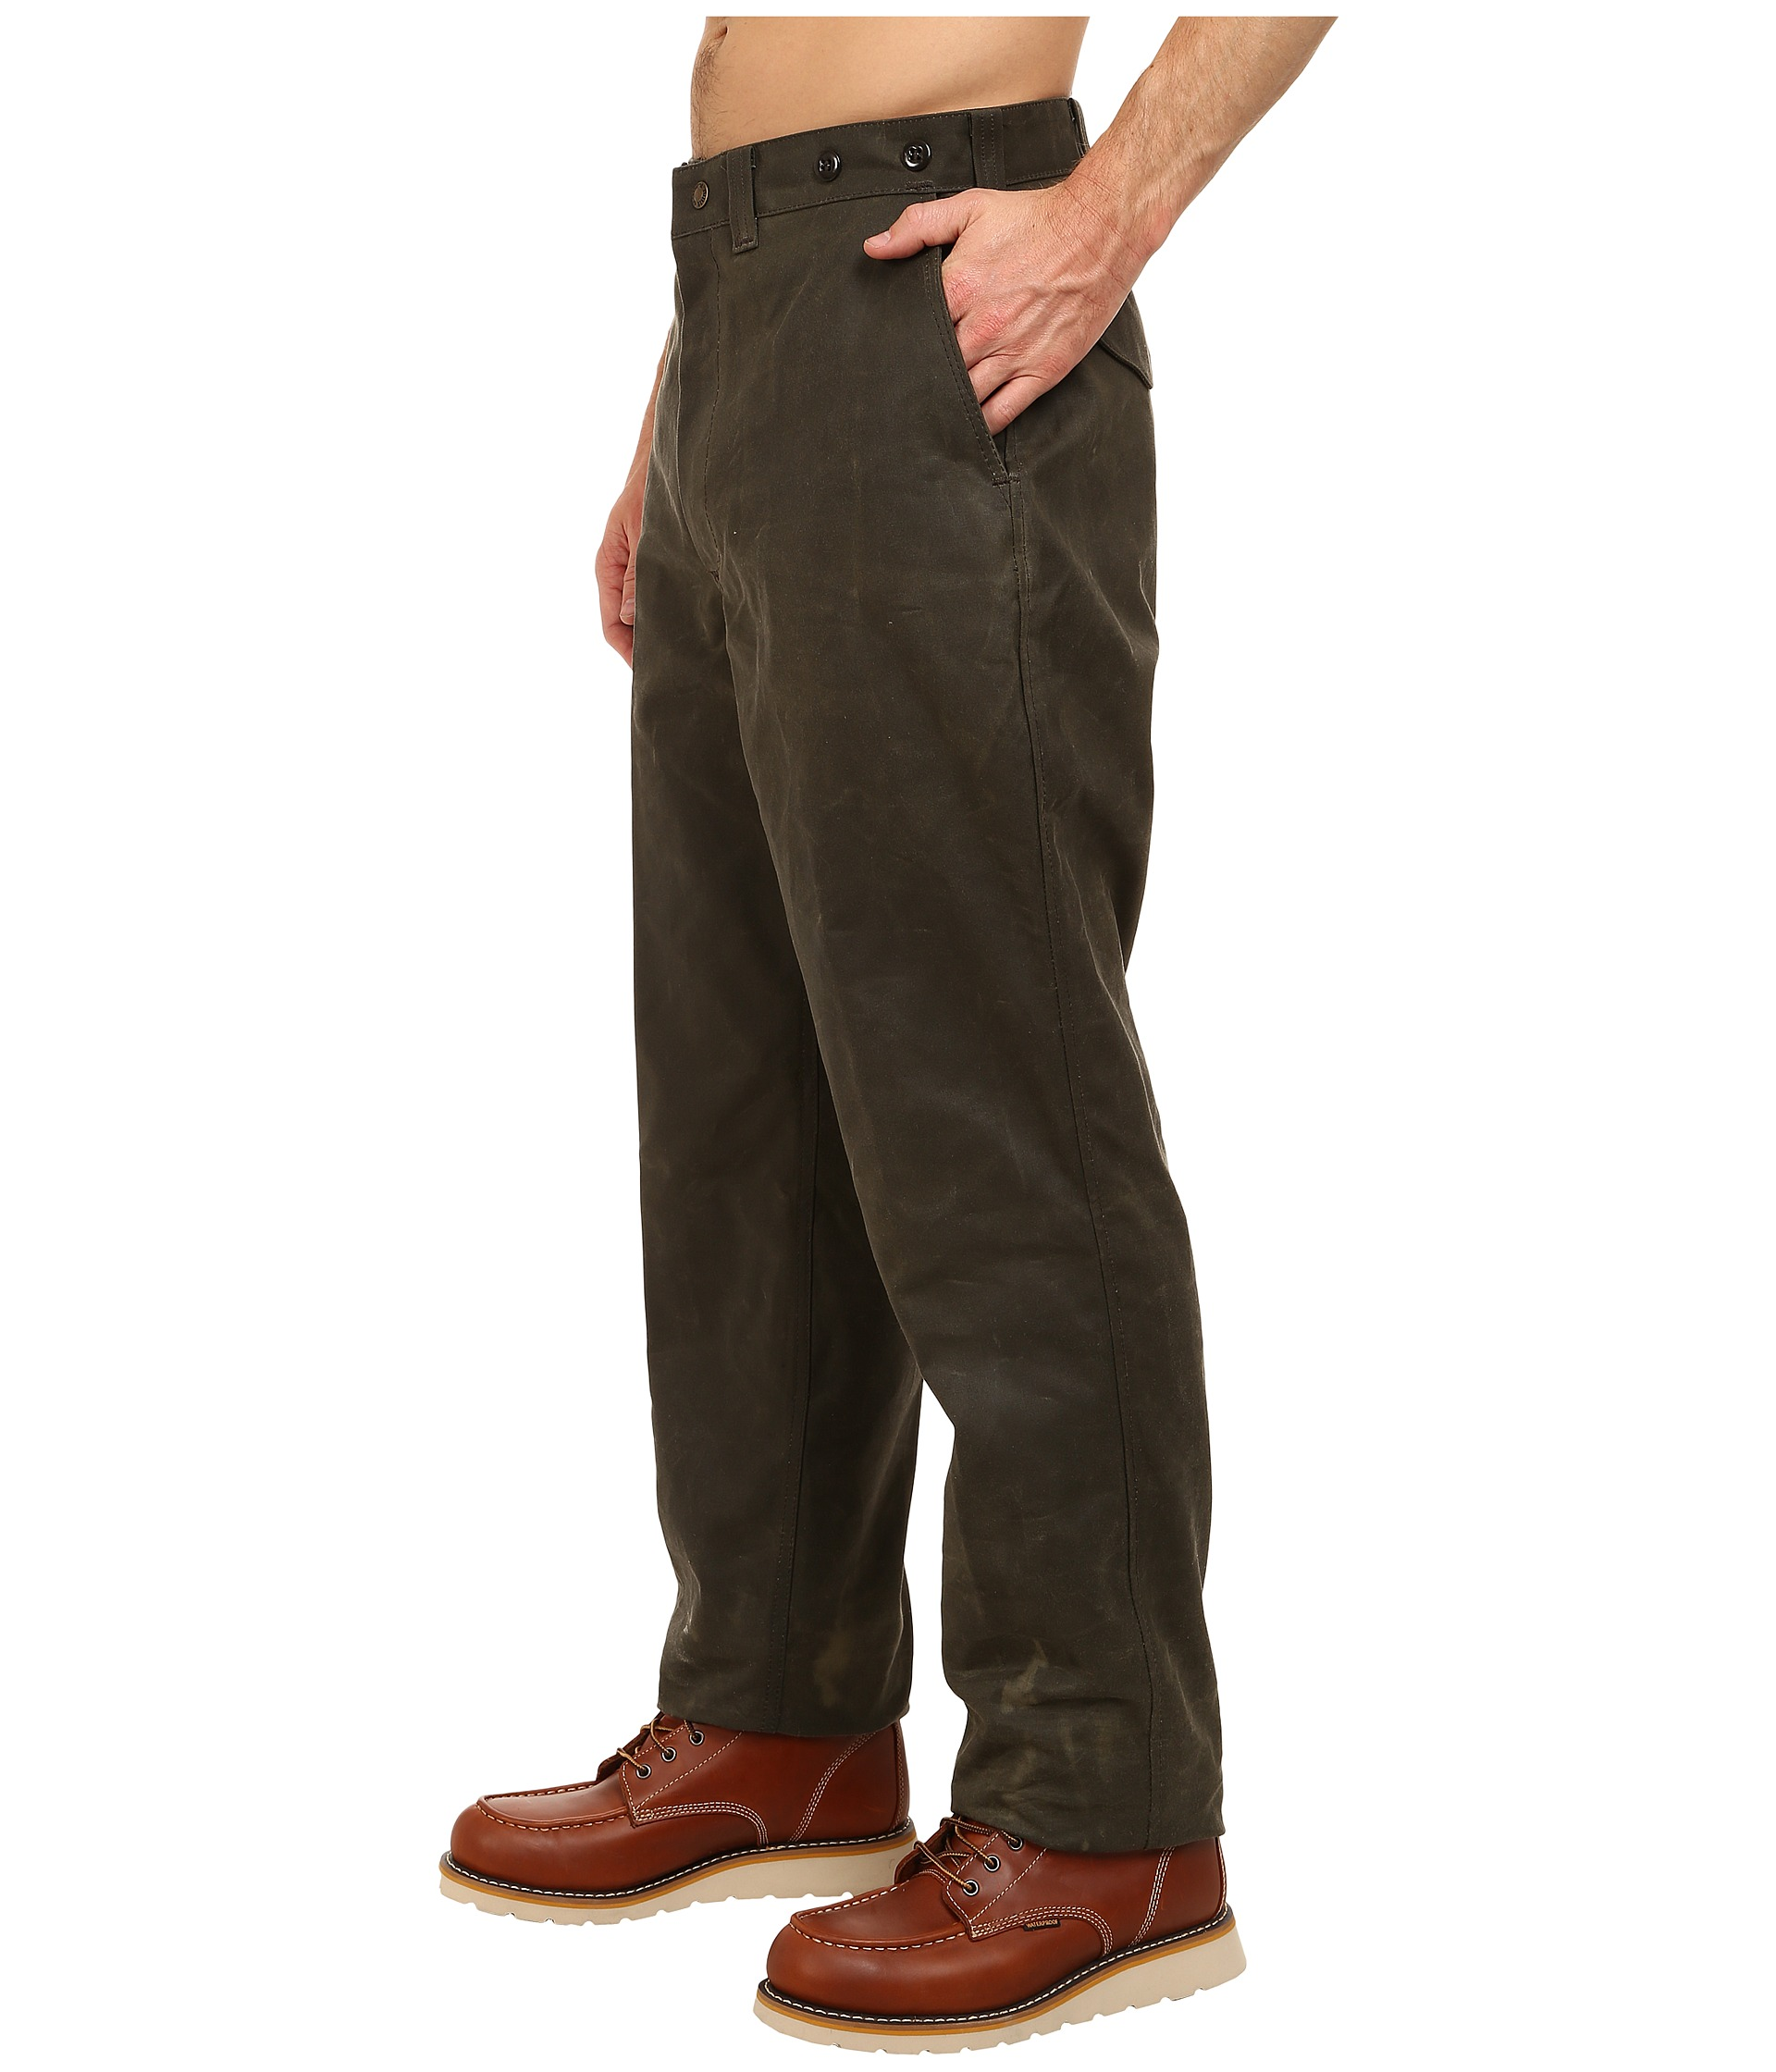 Filson single tin pants